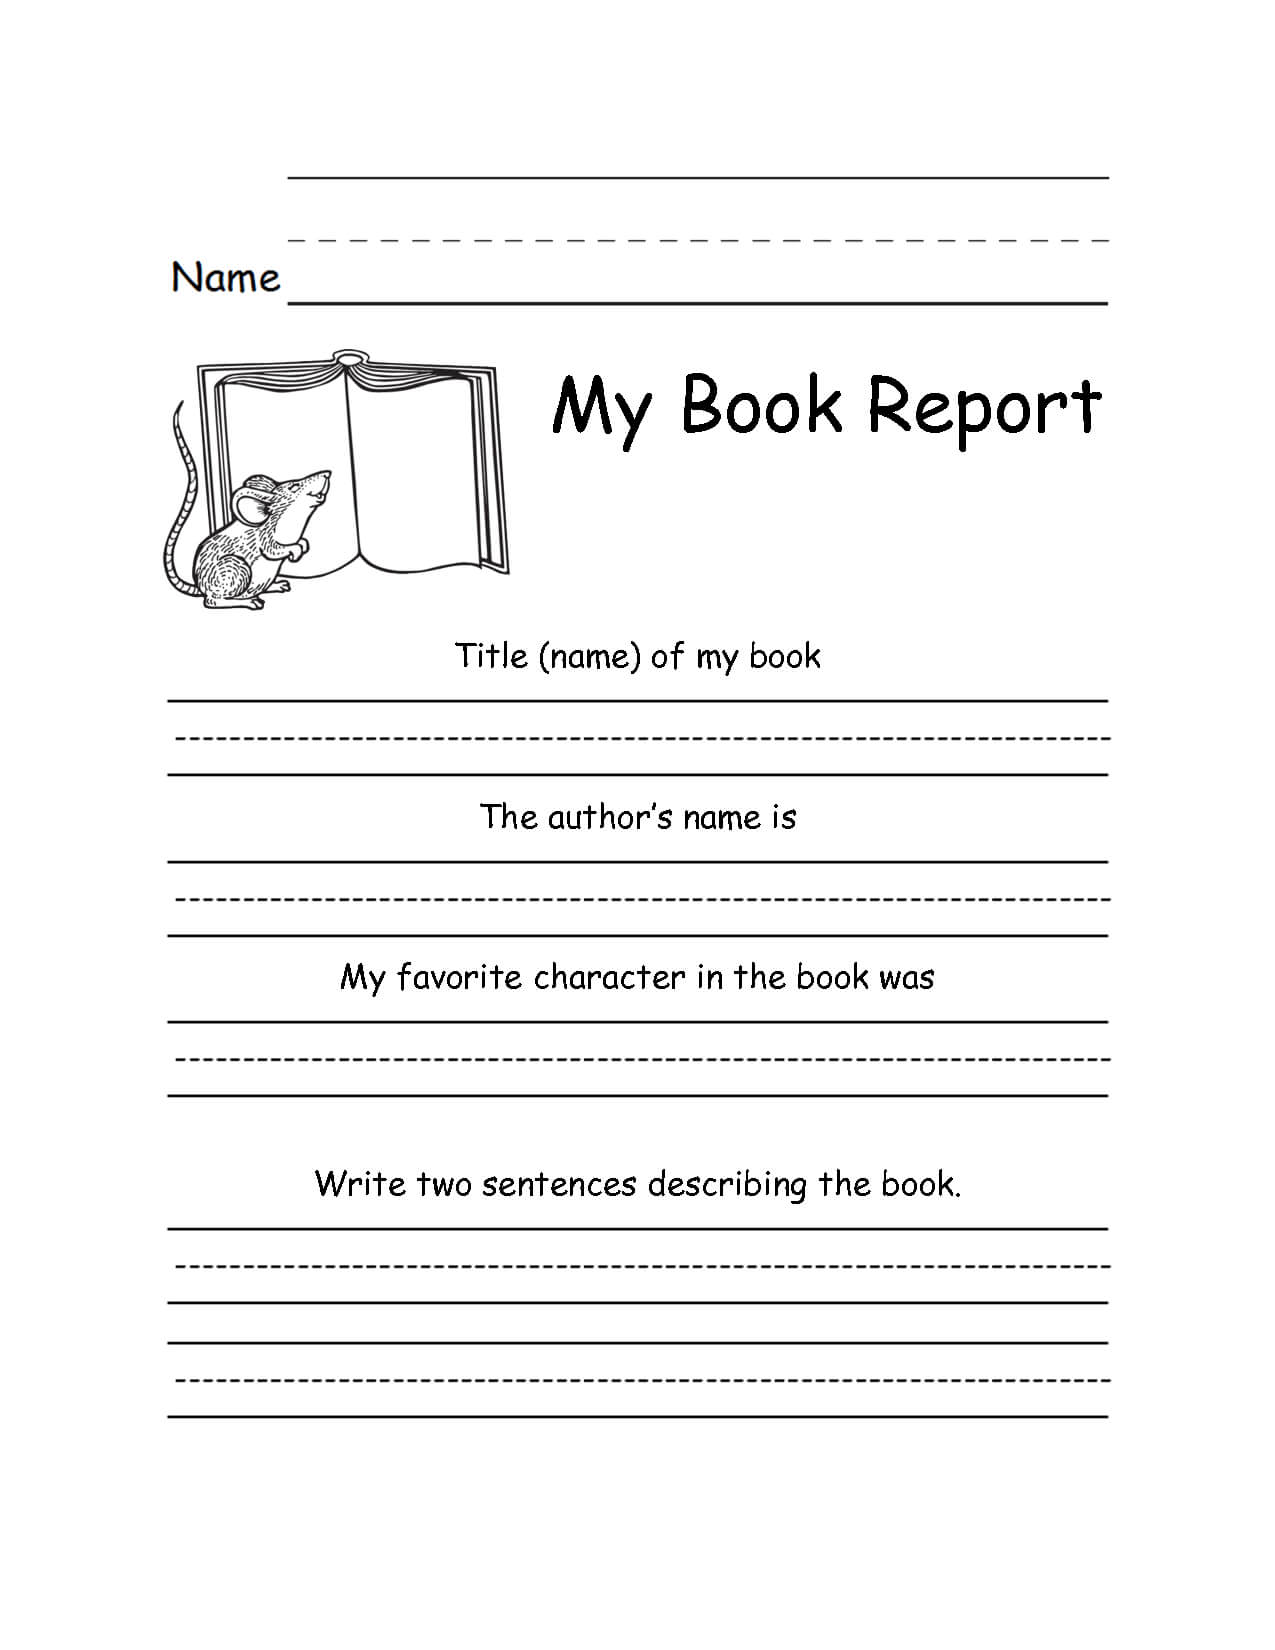 Book Report Forms For 2Nd Grade - Google Search | Homeschool With Book Report Template Grade 1